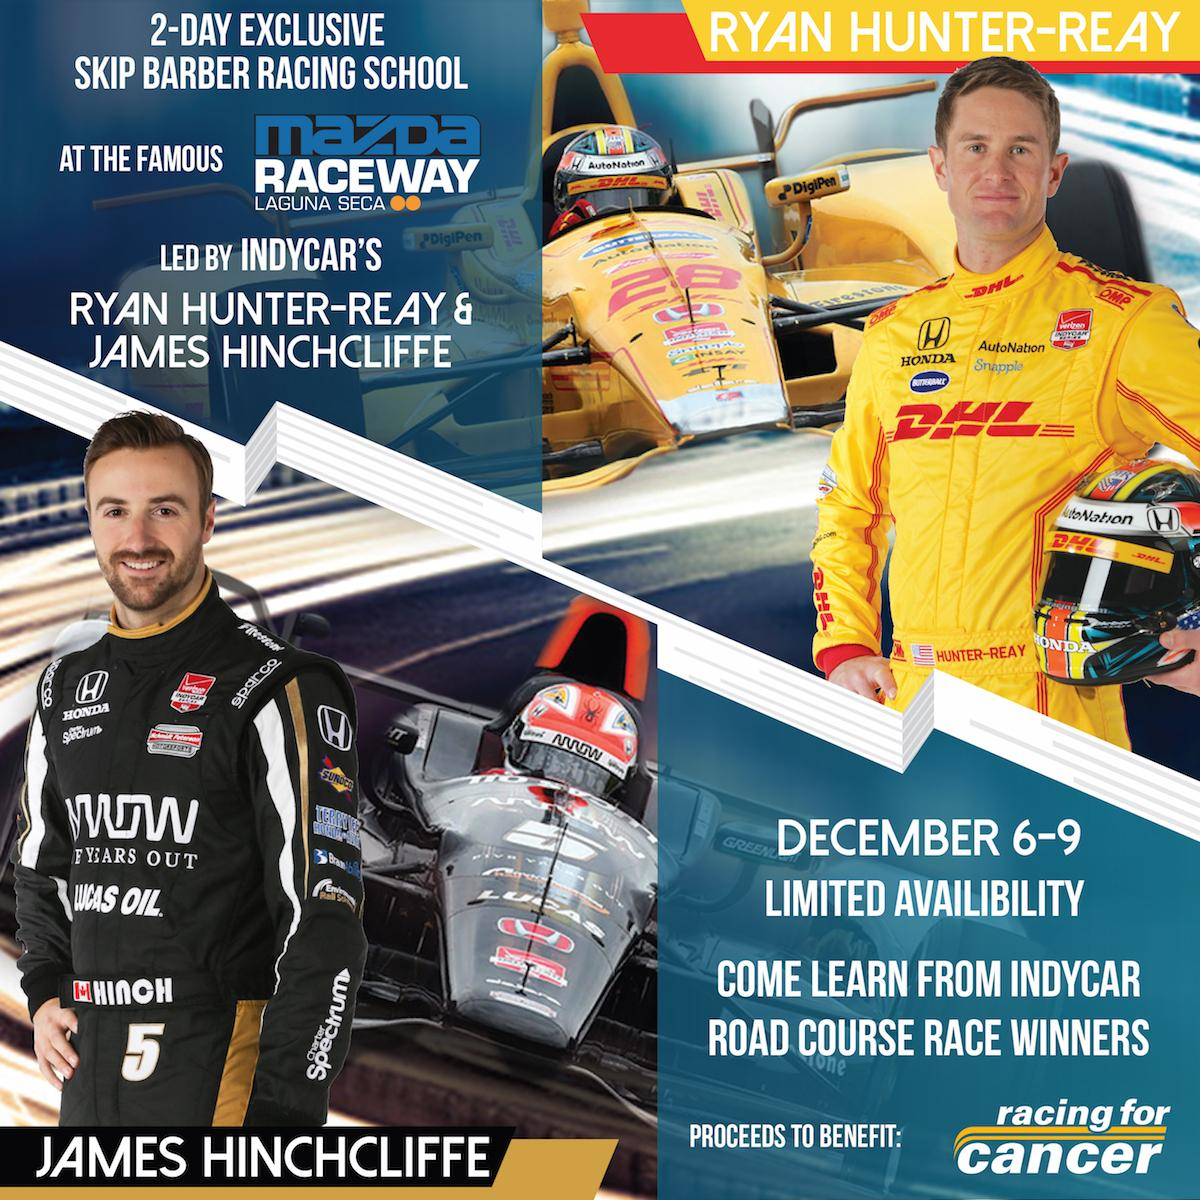 Check out our 2-Day Race School, coming this Dec. at #LagunaSeca with @RaceSkipBarber @RyanHunterReay and @Hinchtown http://t.co/W1mkT5ZJPd